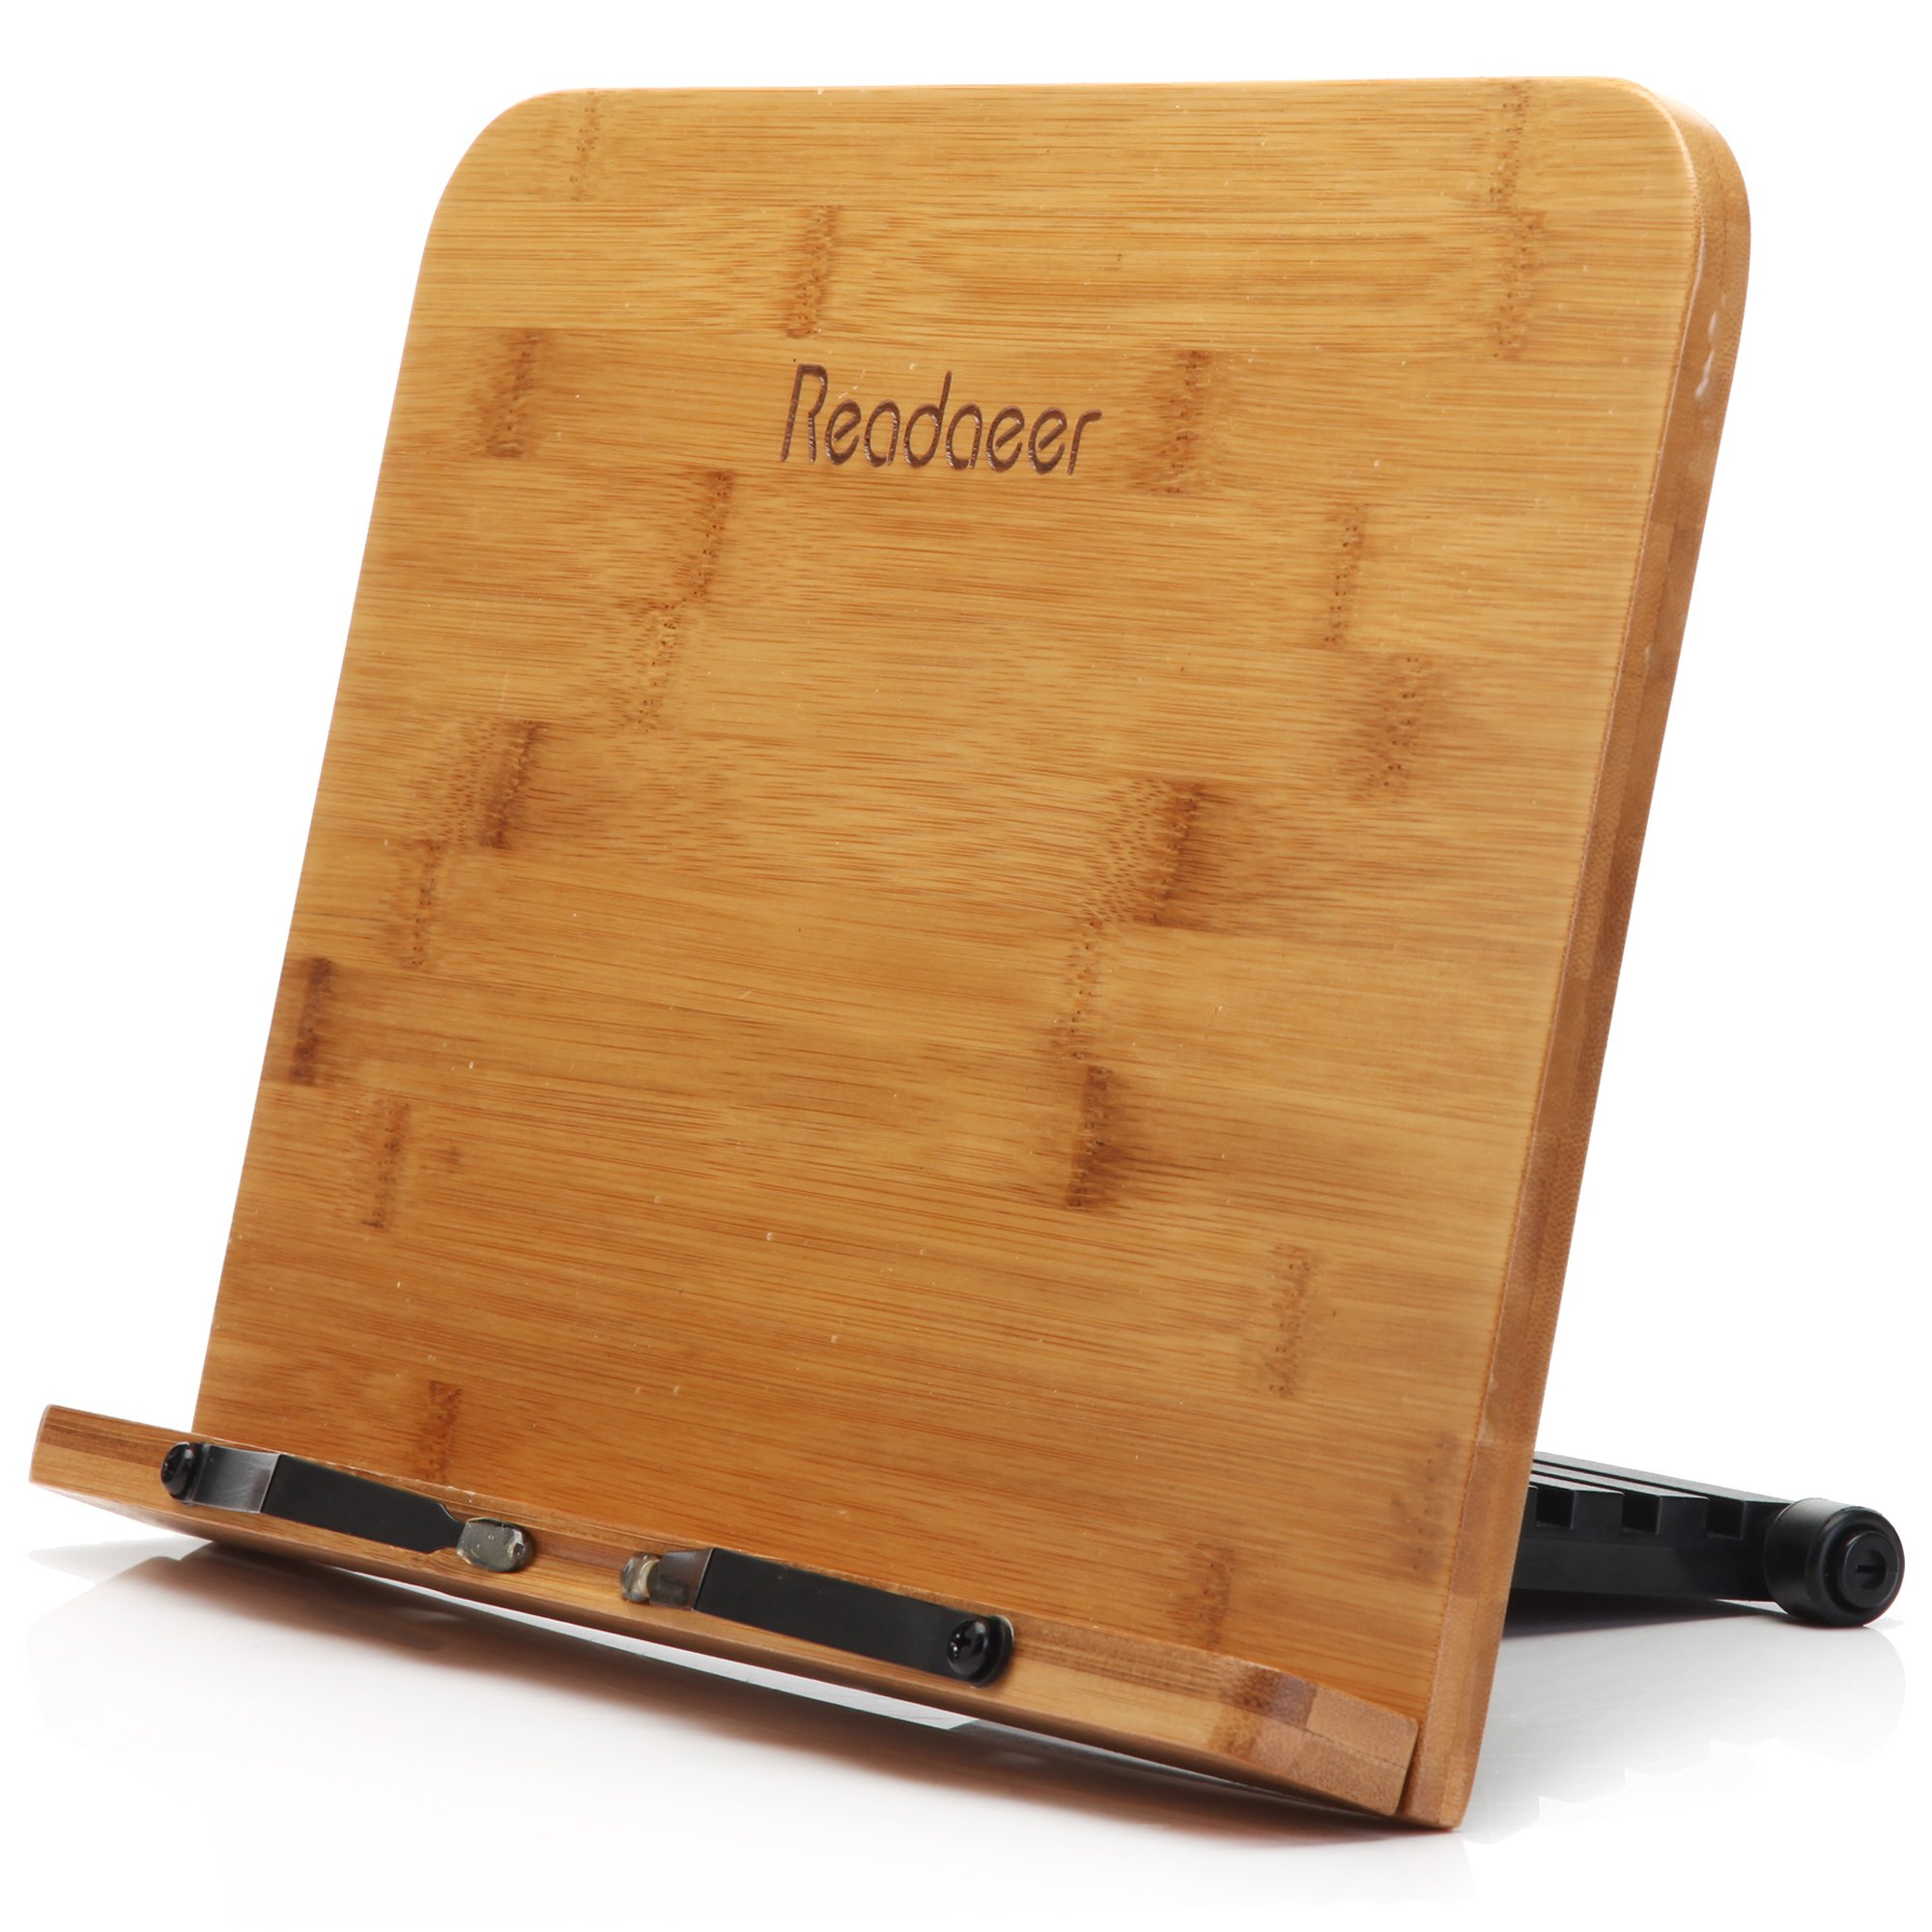 Reodoeer BamBoo Reading Rest Cook Book Document Stand Holder Bookrest by Reodoeer